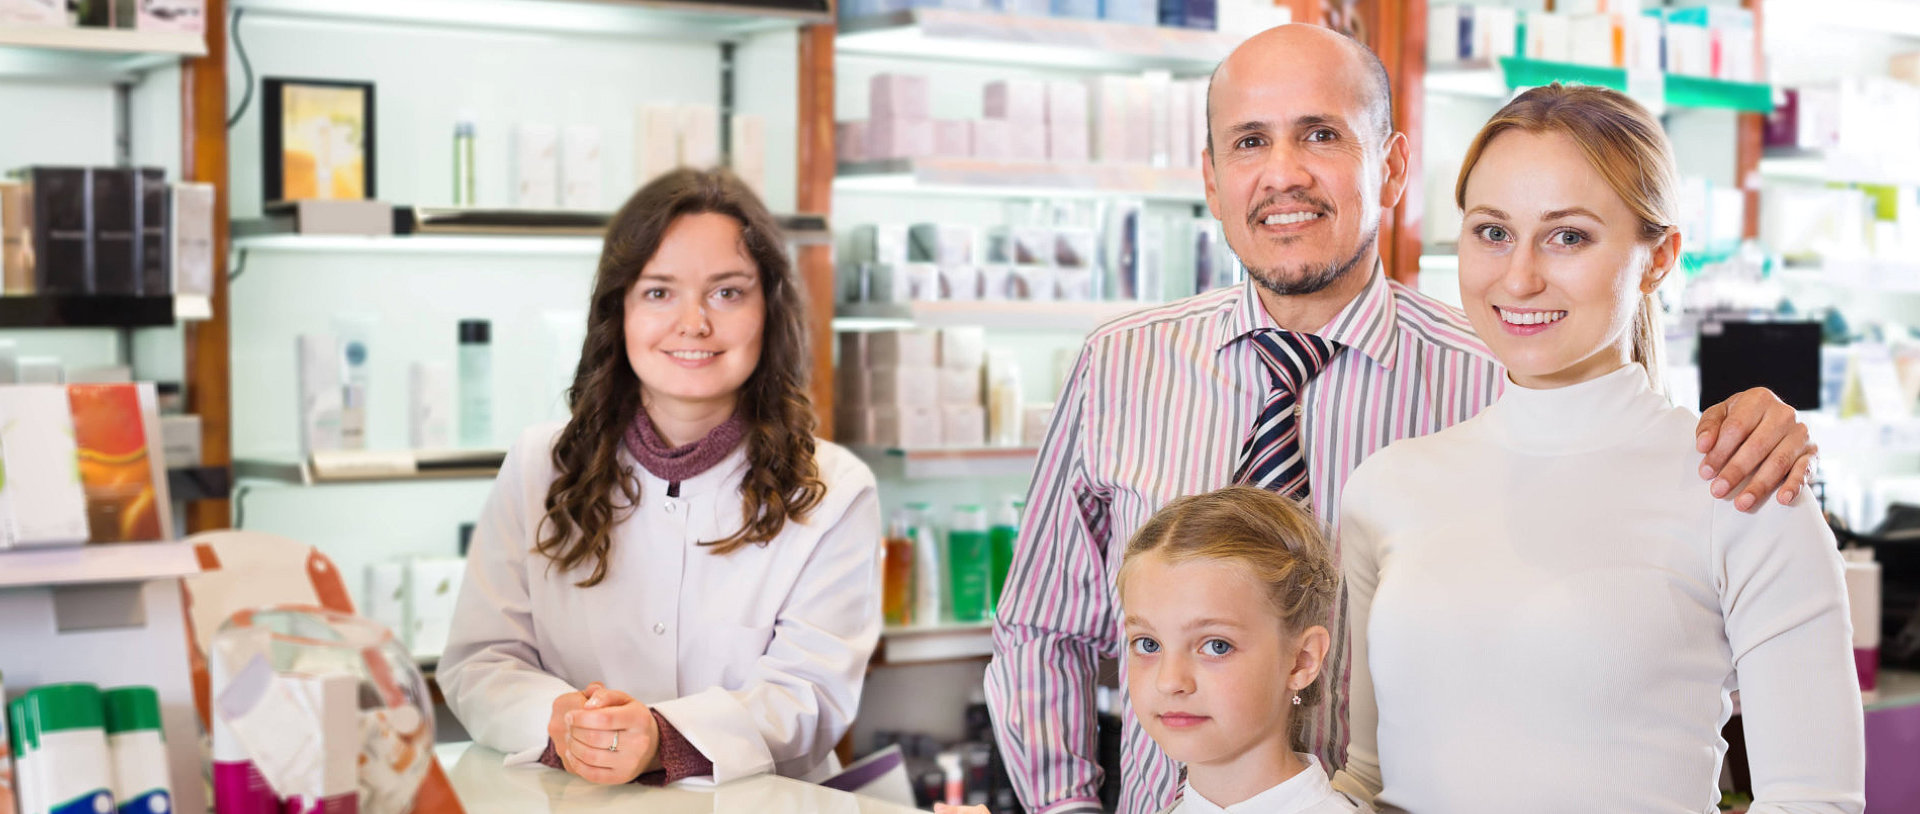 happy family visiting a pharmacy